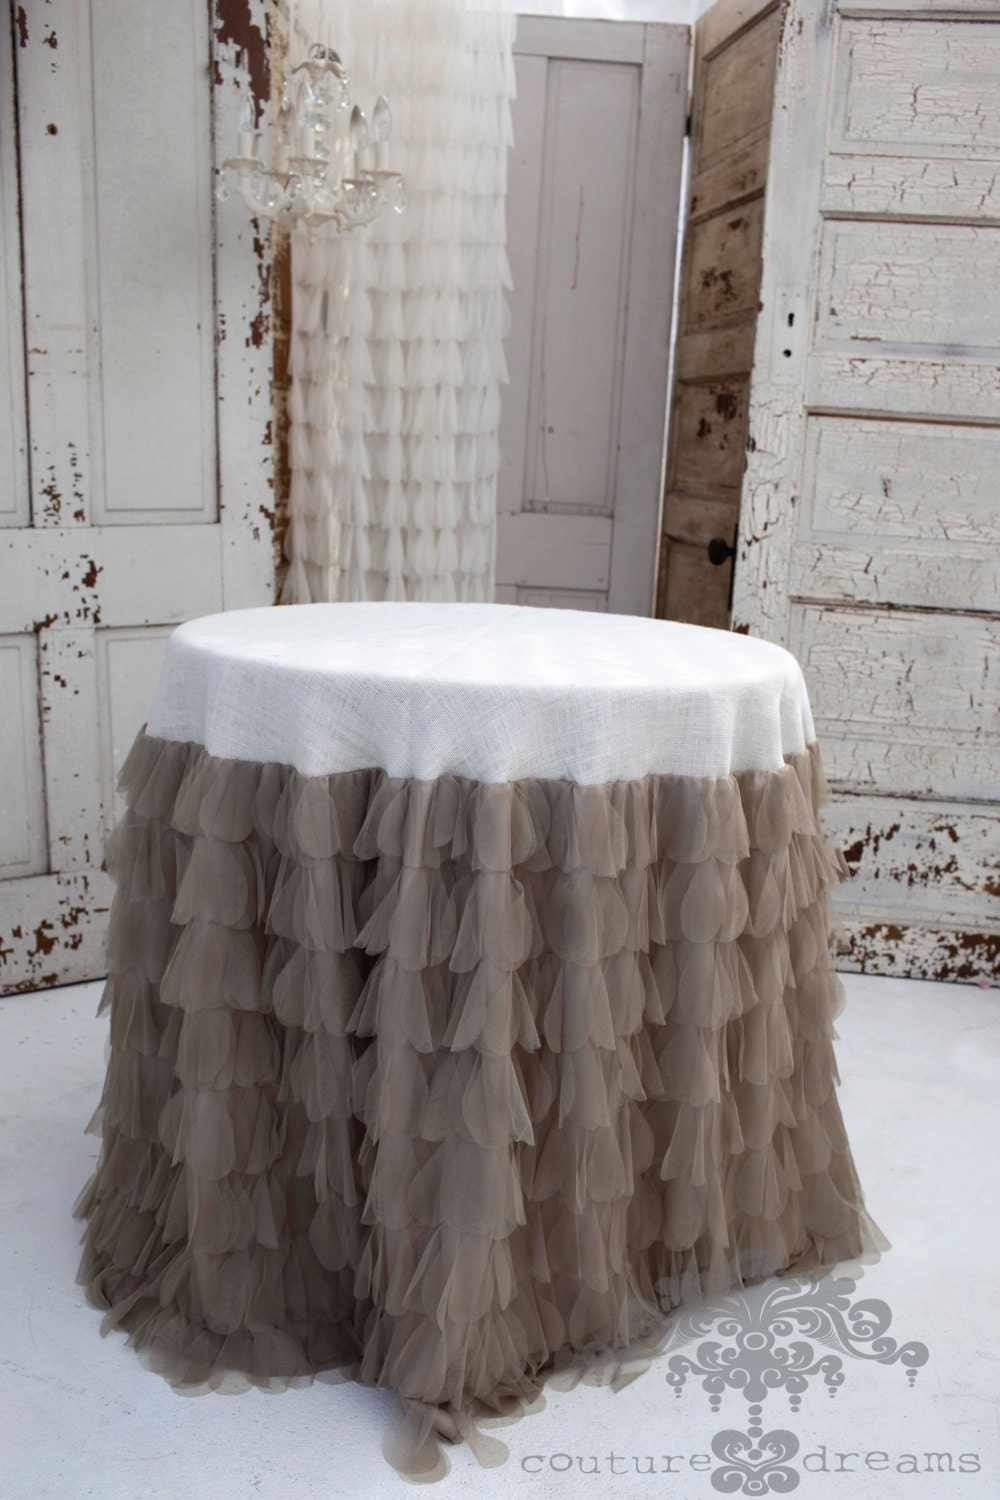 Couture Dreams Chichi Sable Petal Amp Ivory Jute Tablecloth